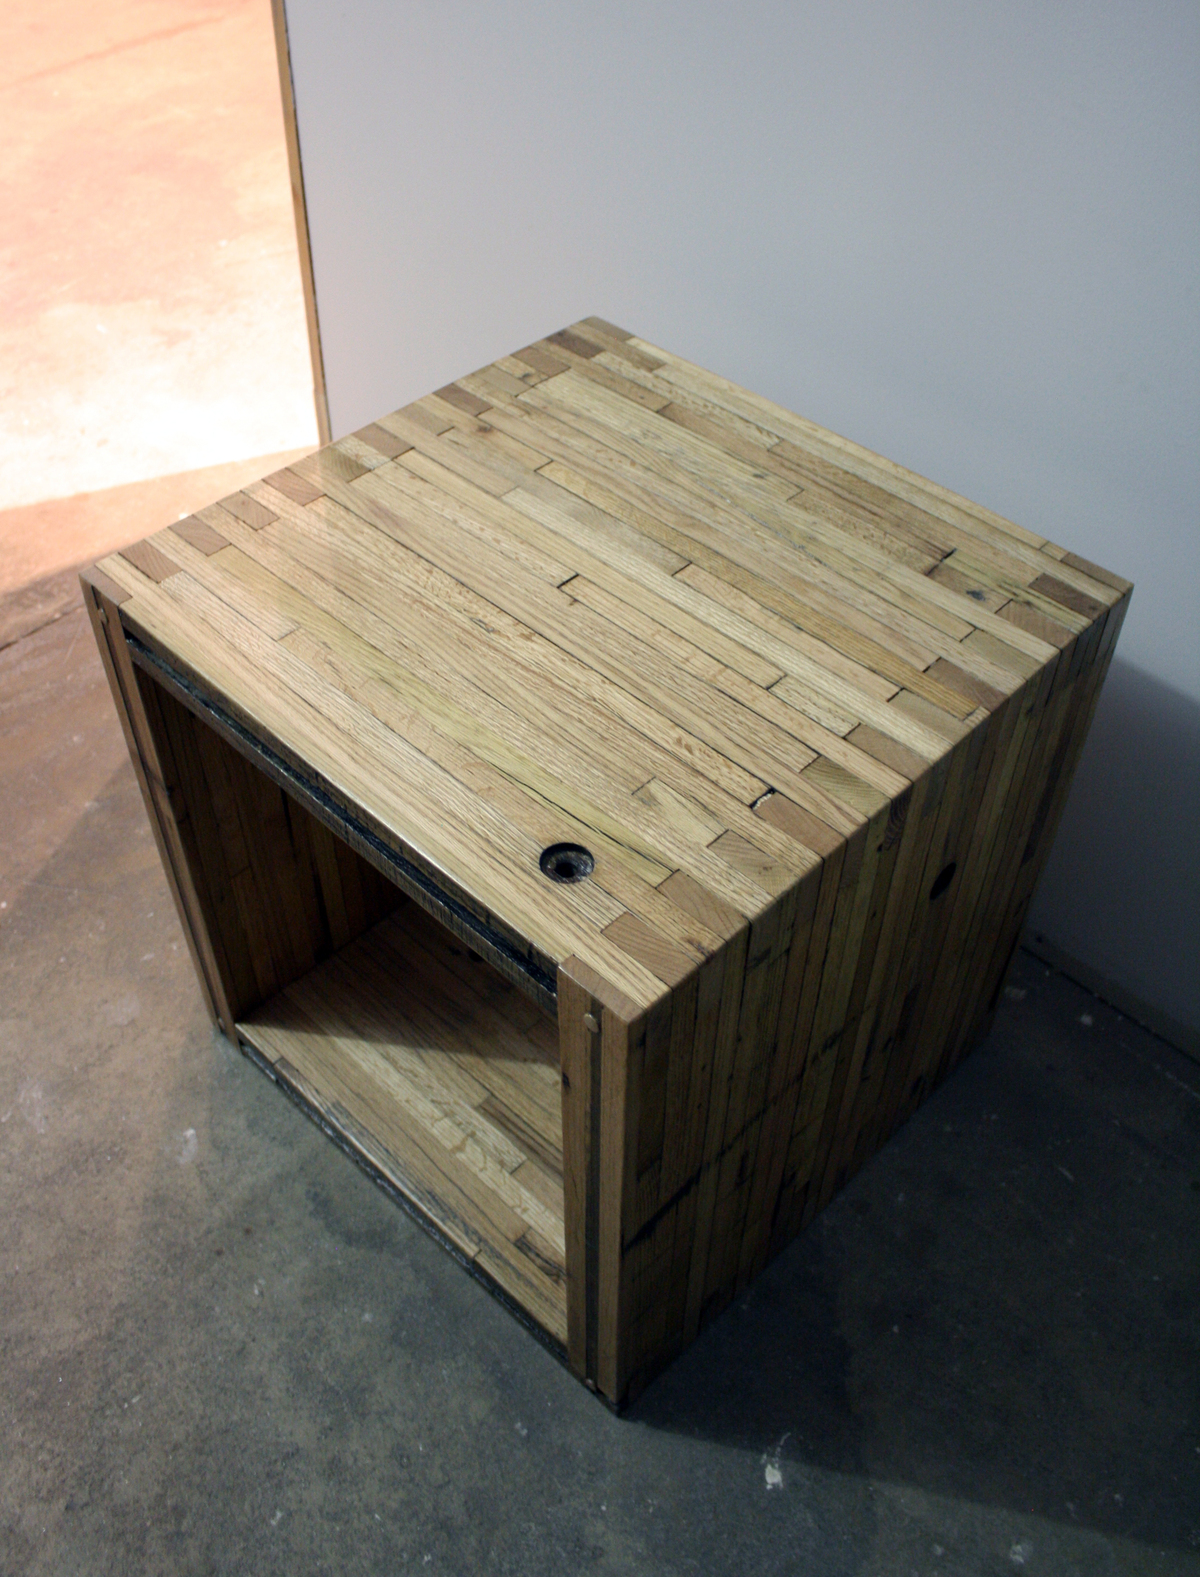 Location: Denver, CO - Reclaimed Box Car Furniture Gregory Gordon I Archinect